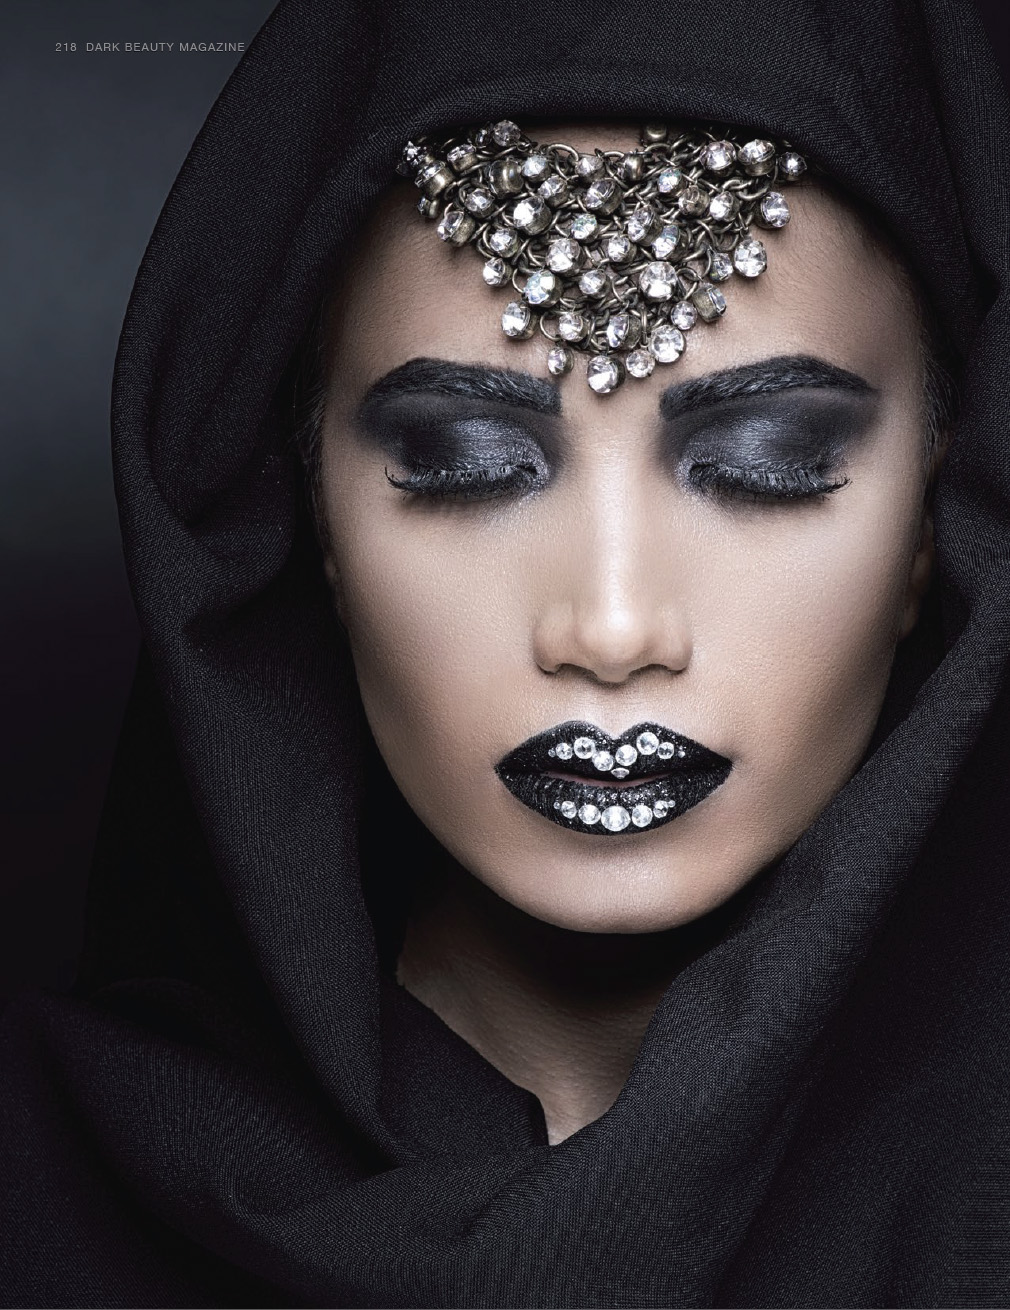 Beauty Photographer Tomas Skaringa - Wicked 3.jpg